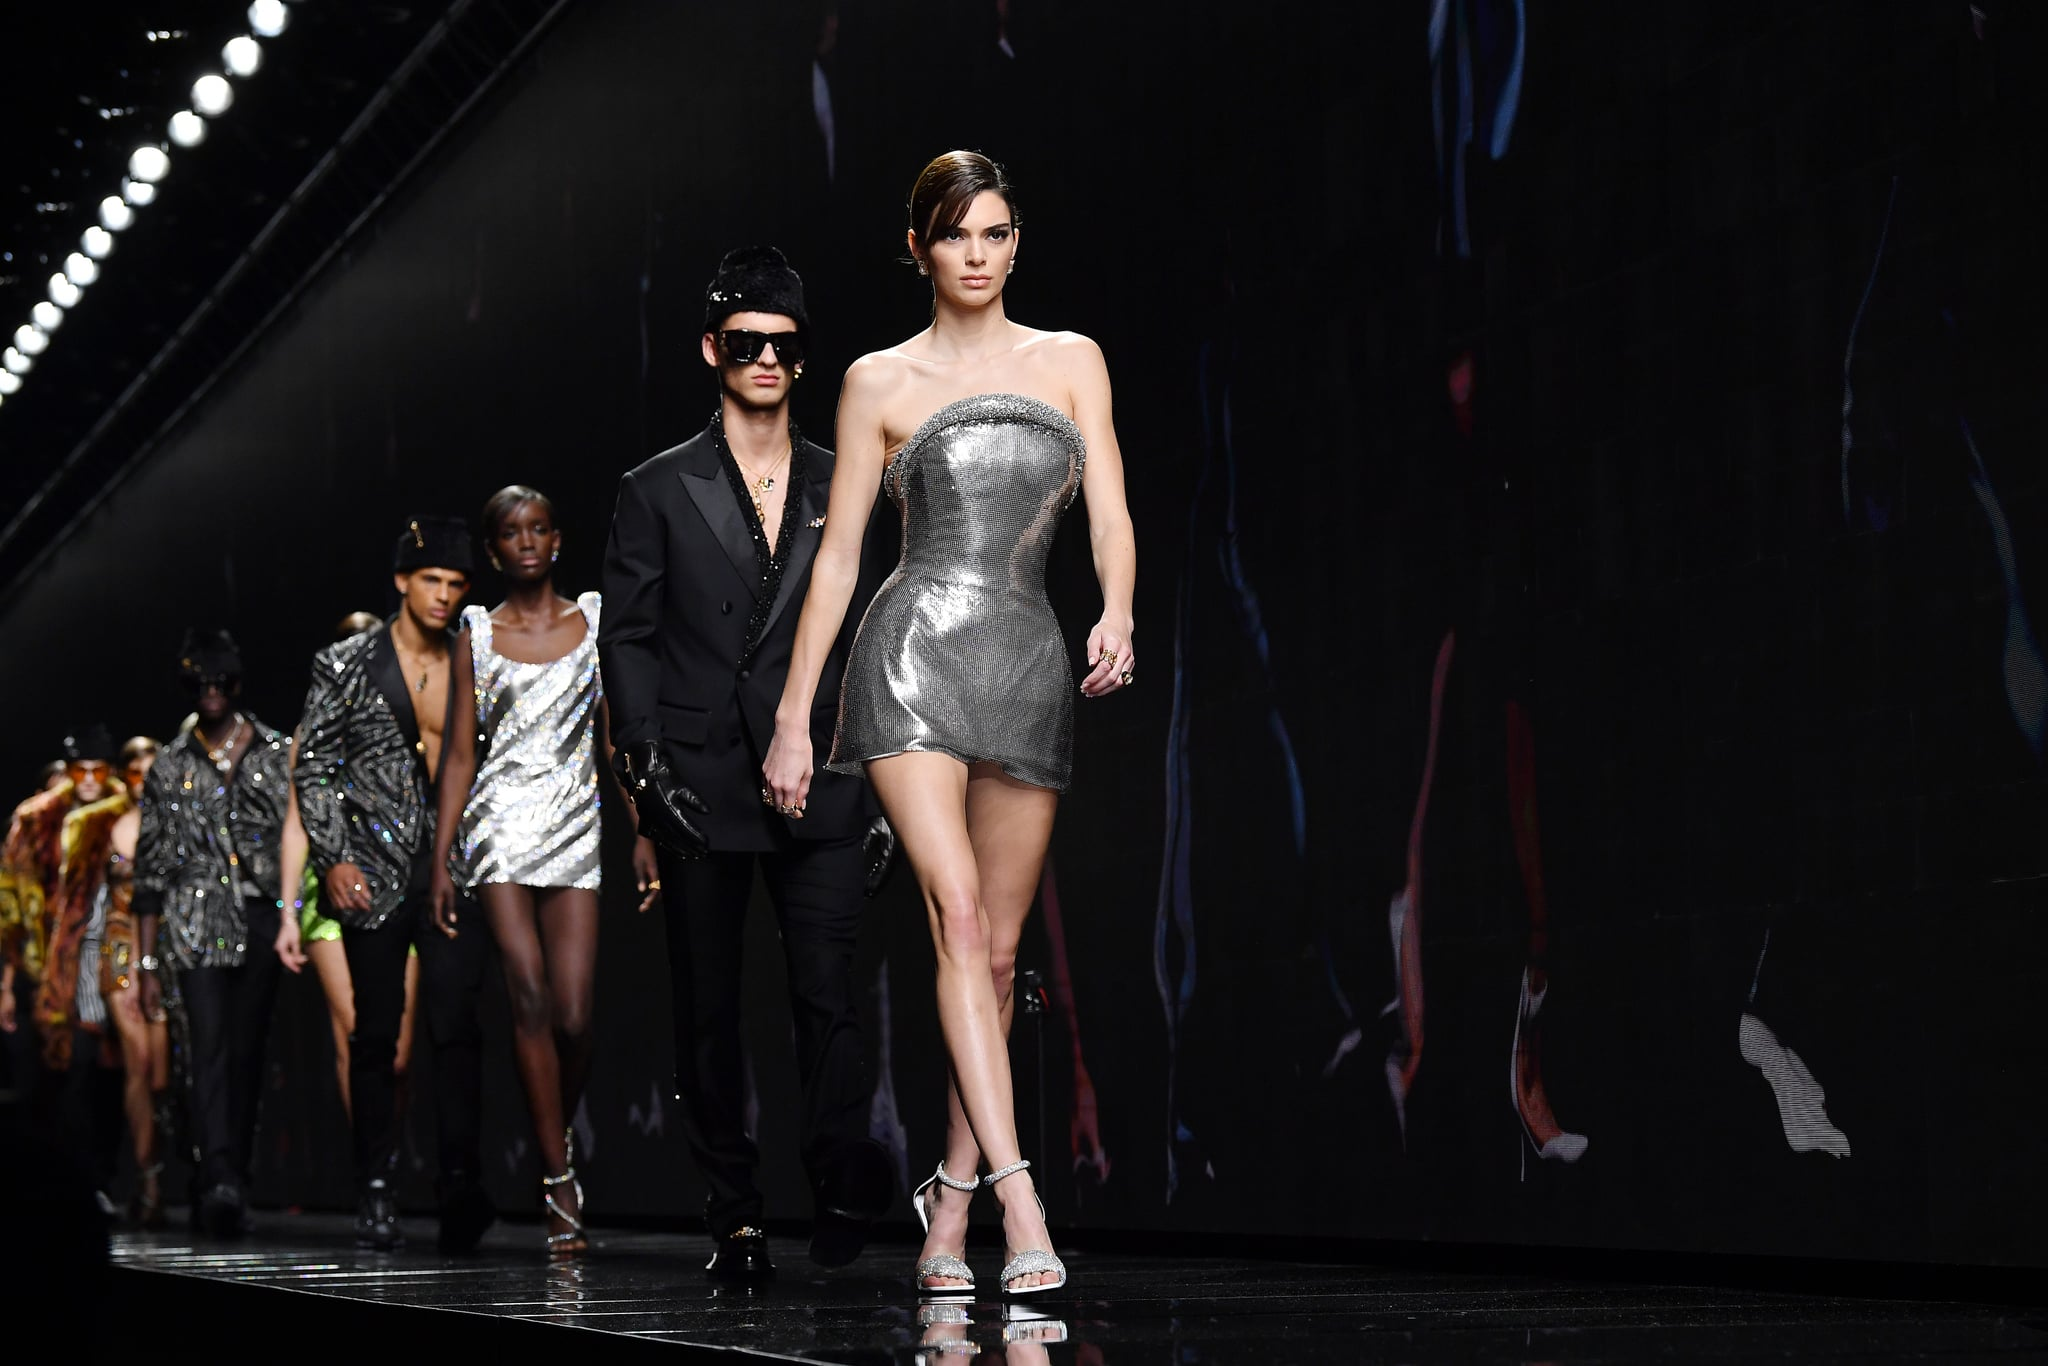 MILAN, ITALY - FEBRUARY 21: Kendall Jenner and models walk the runway during the Versace fashion show as part of Milan Fashion Week Fall/Winter 2020-2021 on February 21, 2020 in Milan, Italy. (Photo by Jacopo Raule/WireImage)